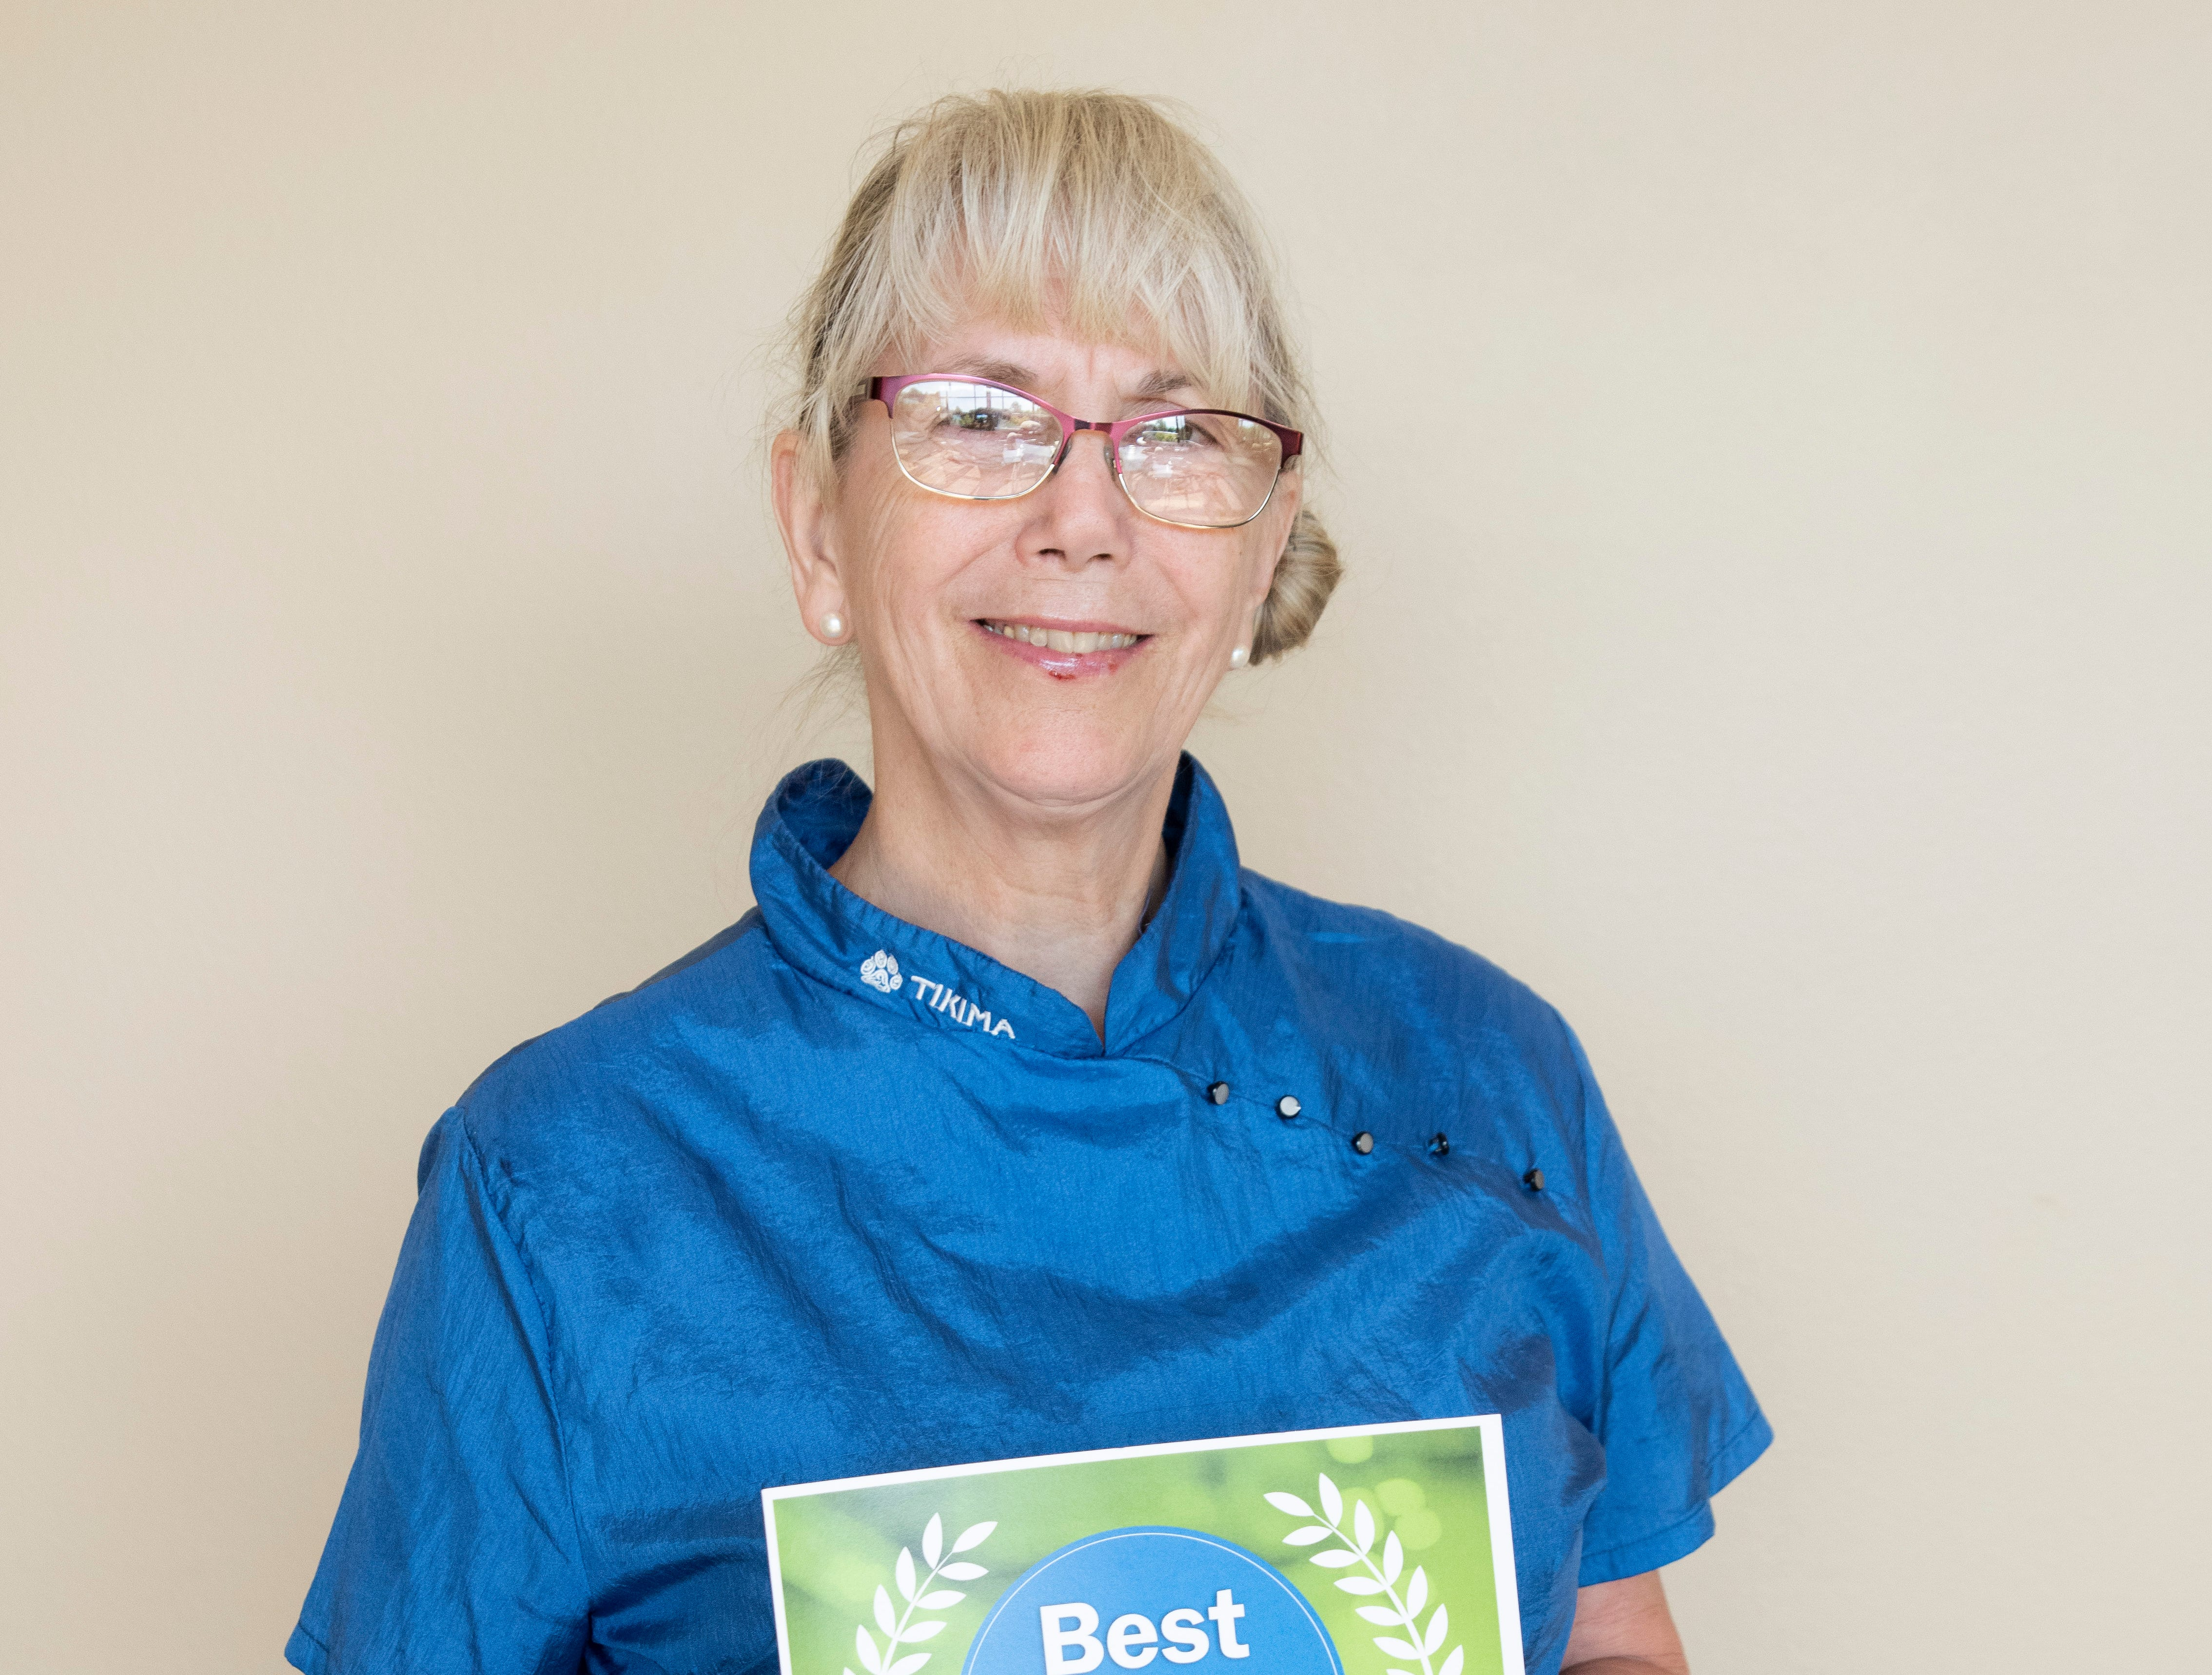 Debbie's Grooming won gold for Best Pet Grooming in the 2019 Best of the Mid-Valley.